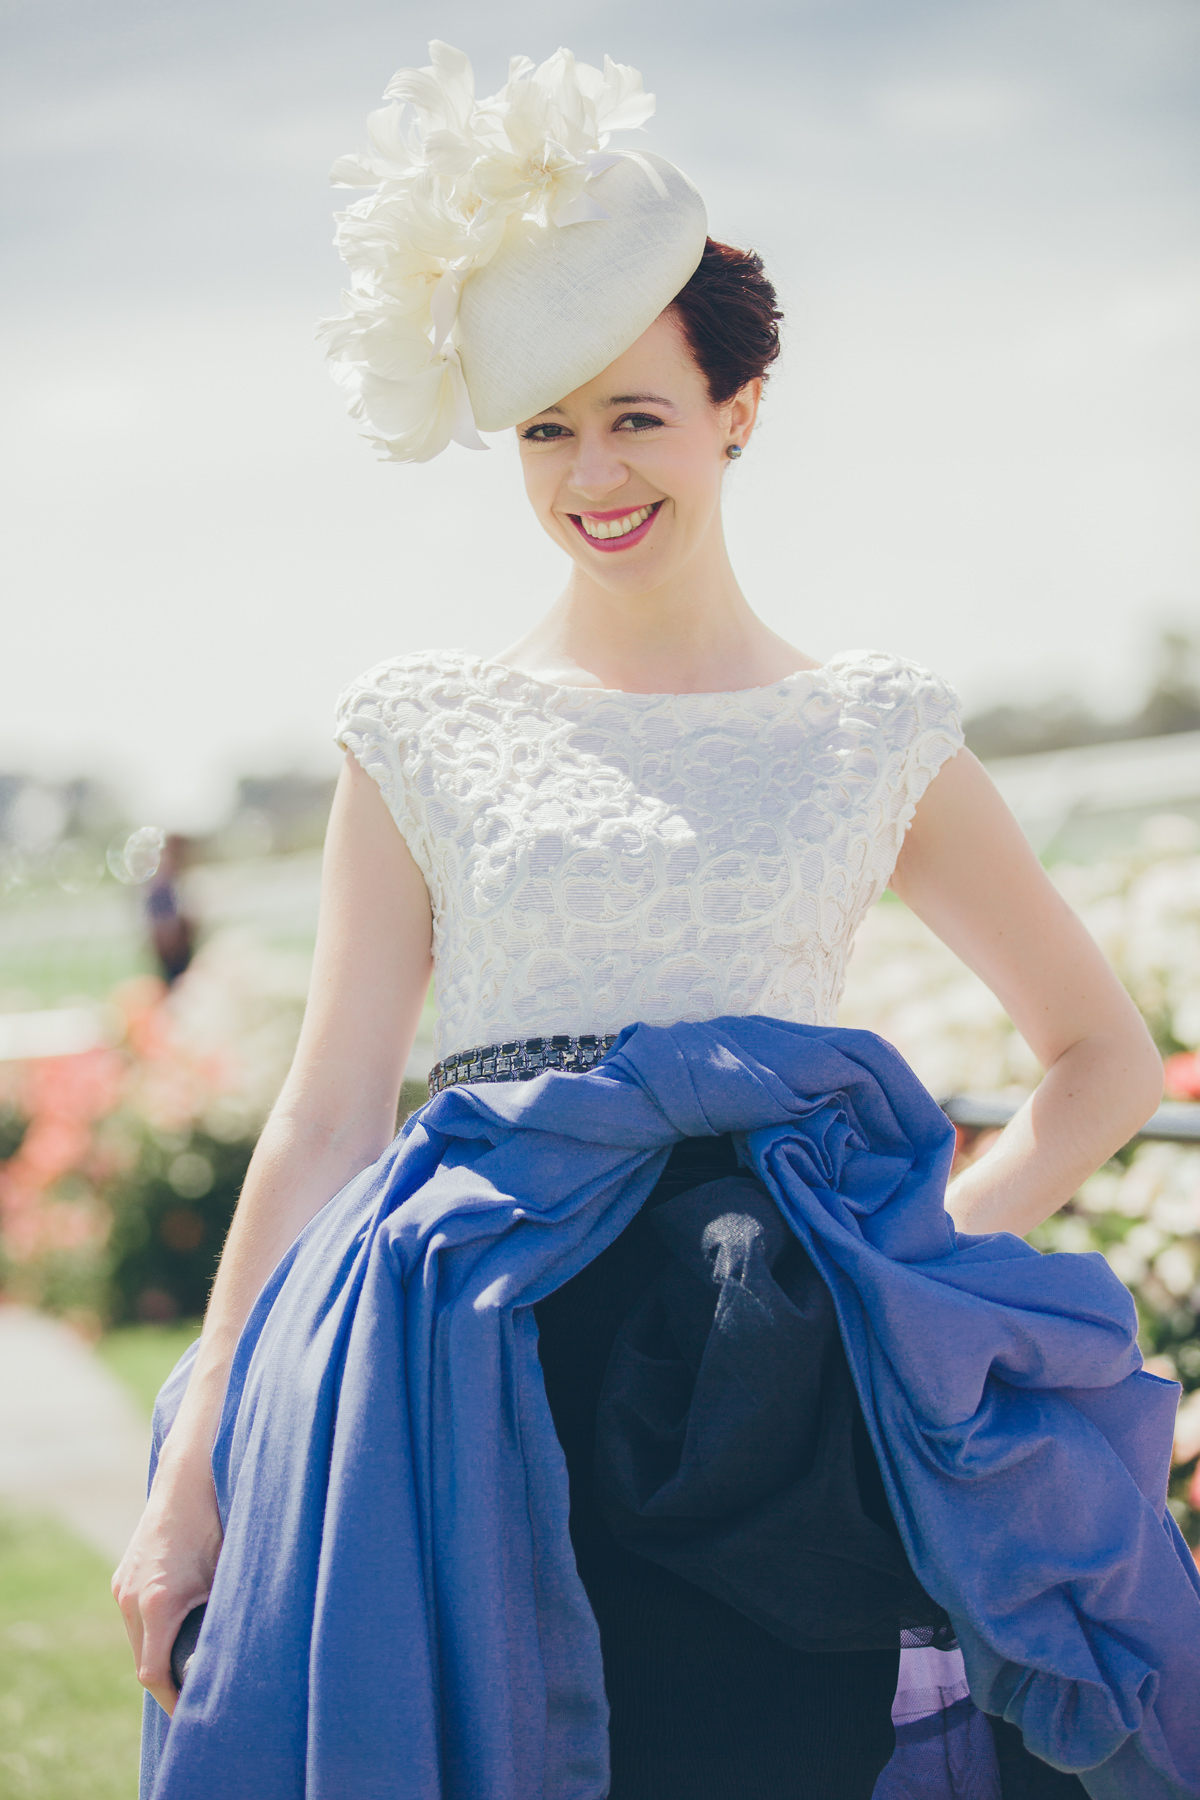 oaks day raceway 2015 2016 - what will you wear?